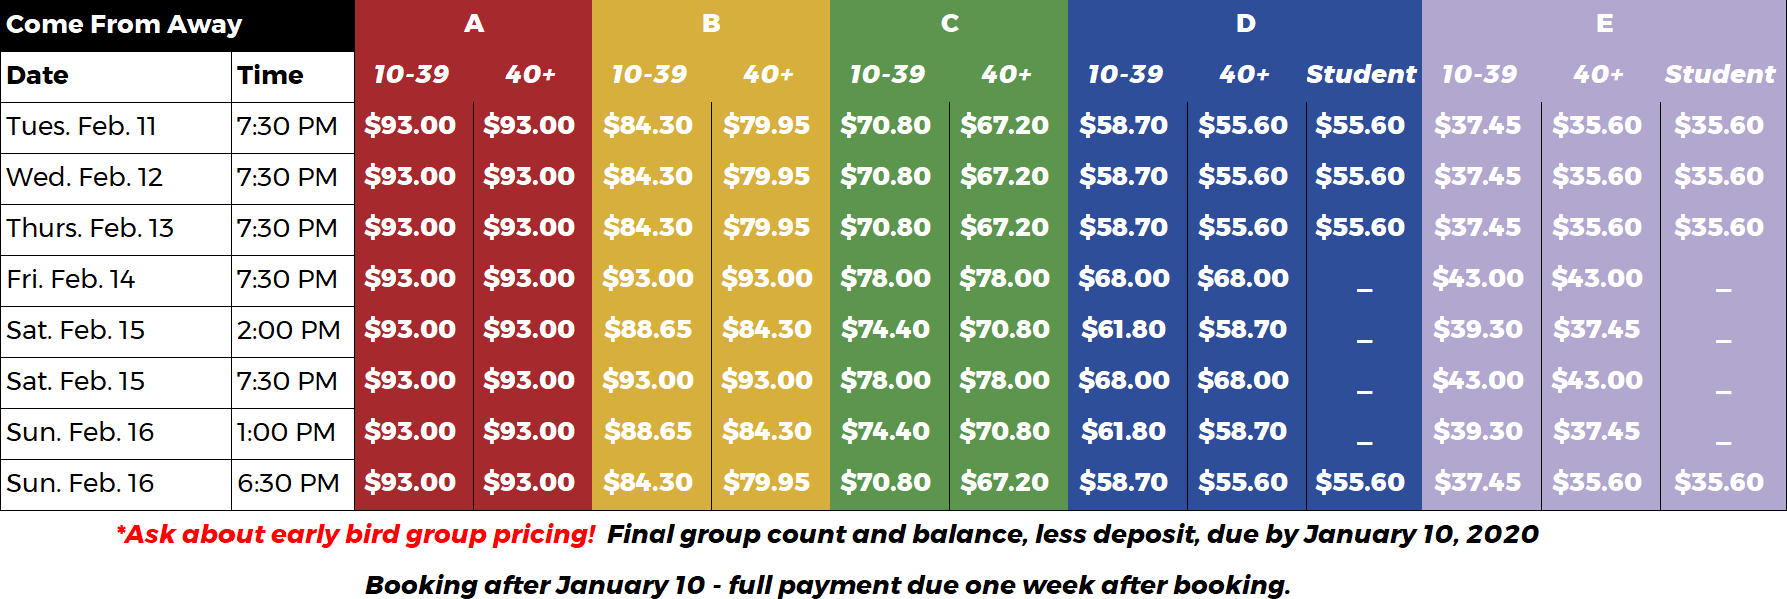 Groups-Pricing-Grid-KC-Come-From-Away